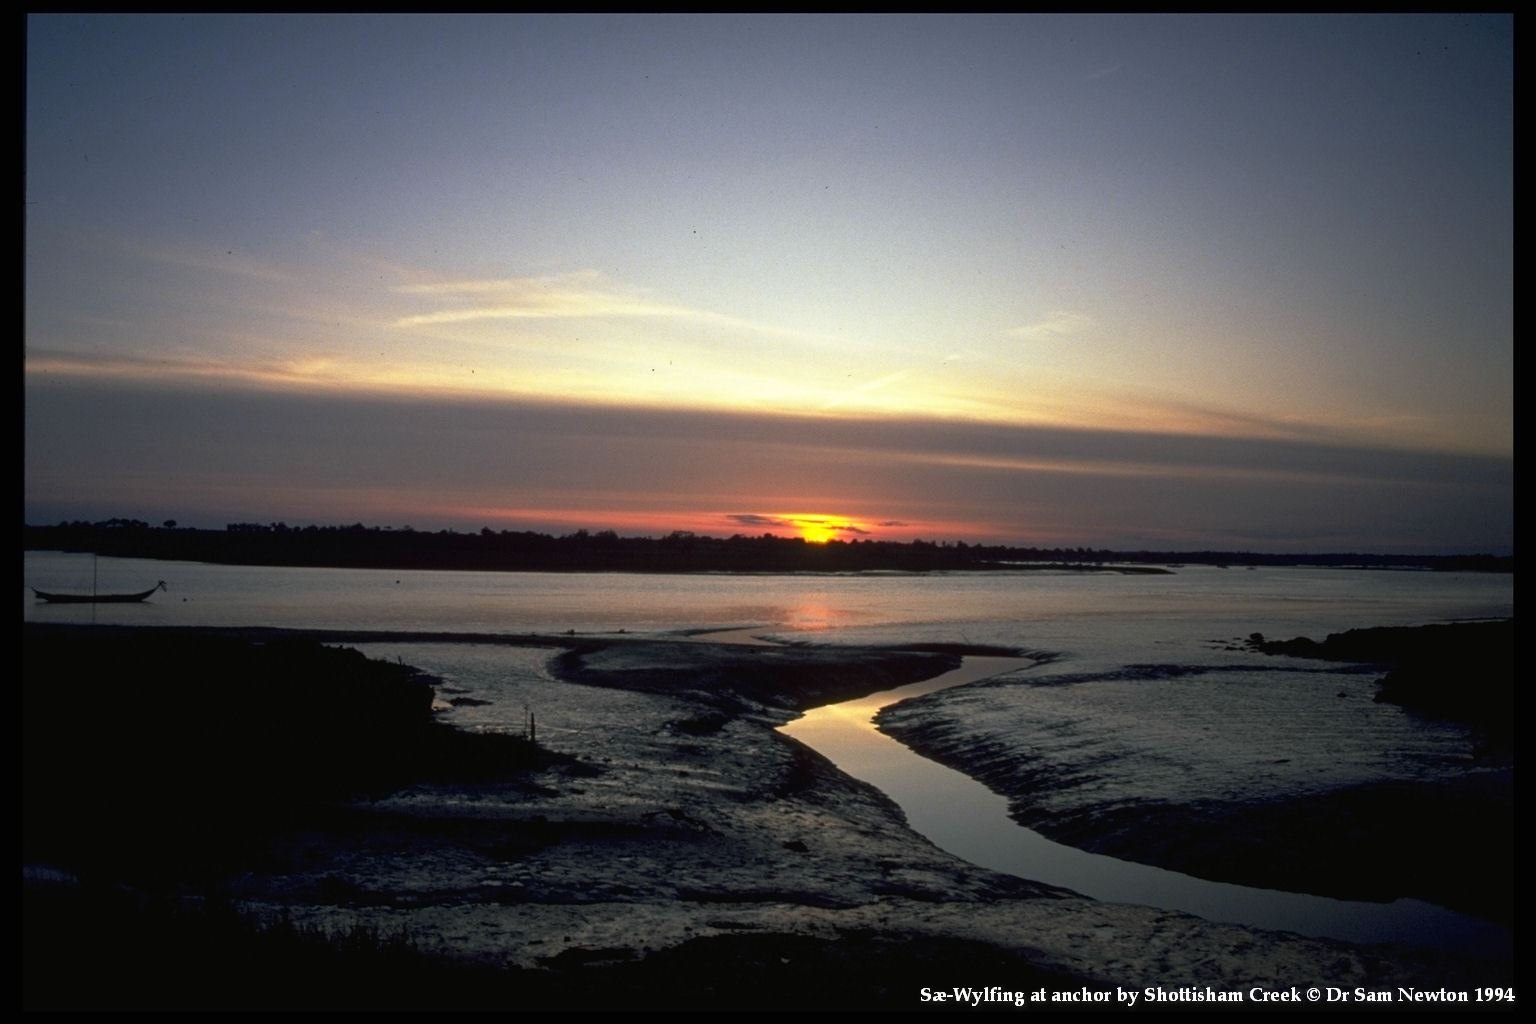 Sæ Wylfing at sunset by Shottisham Creek © Dr Sam Newton 1994